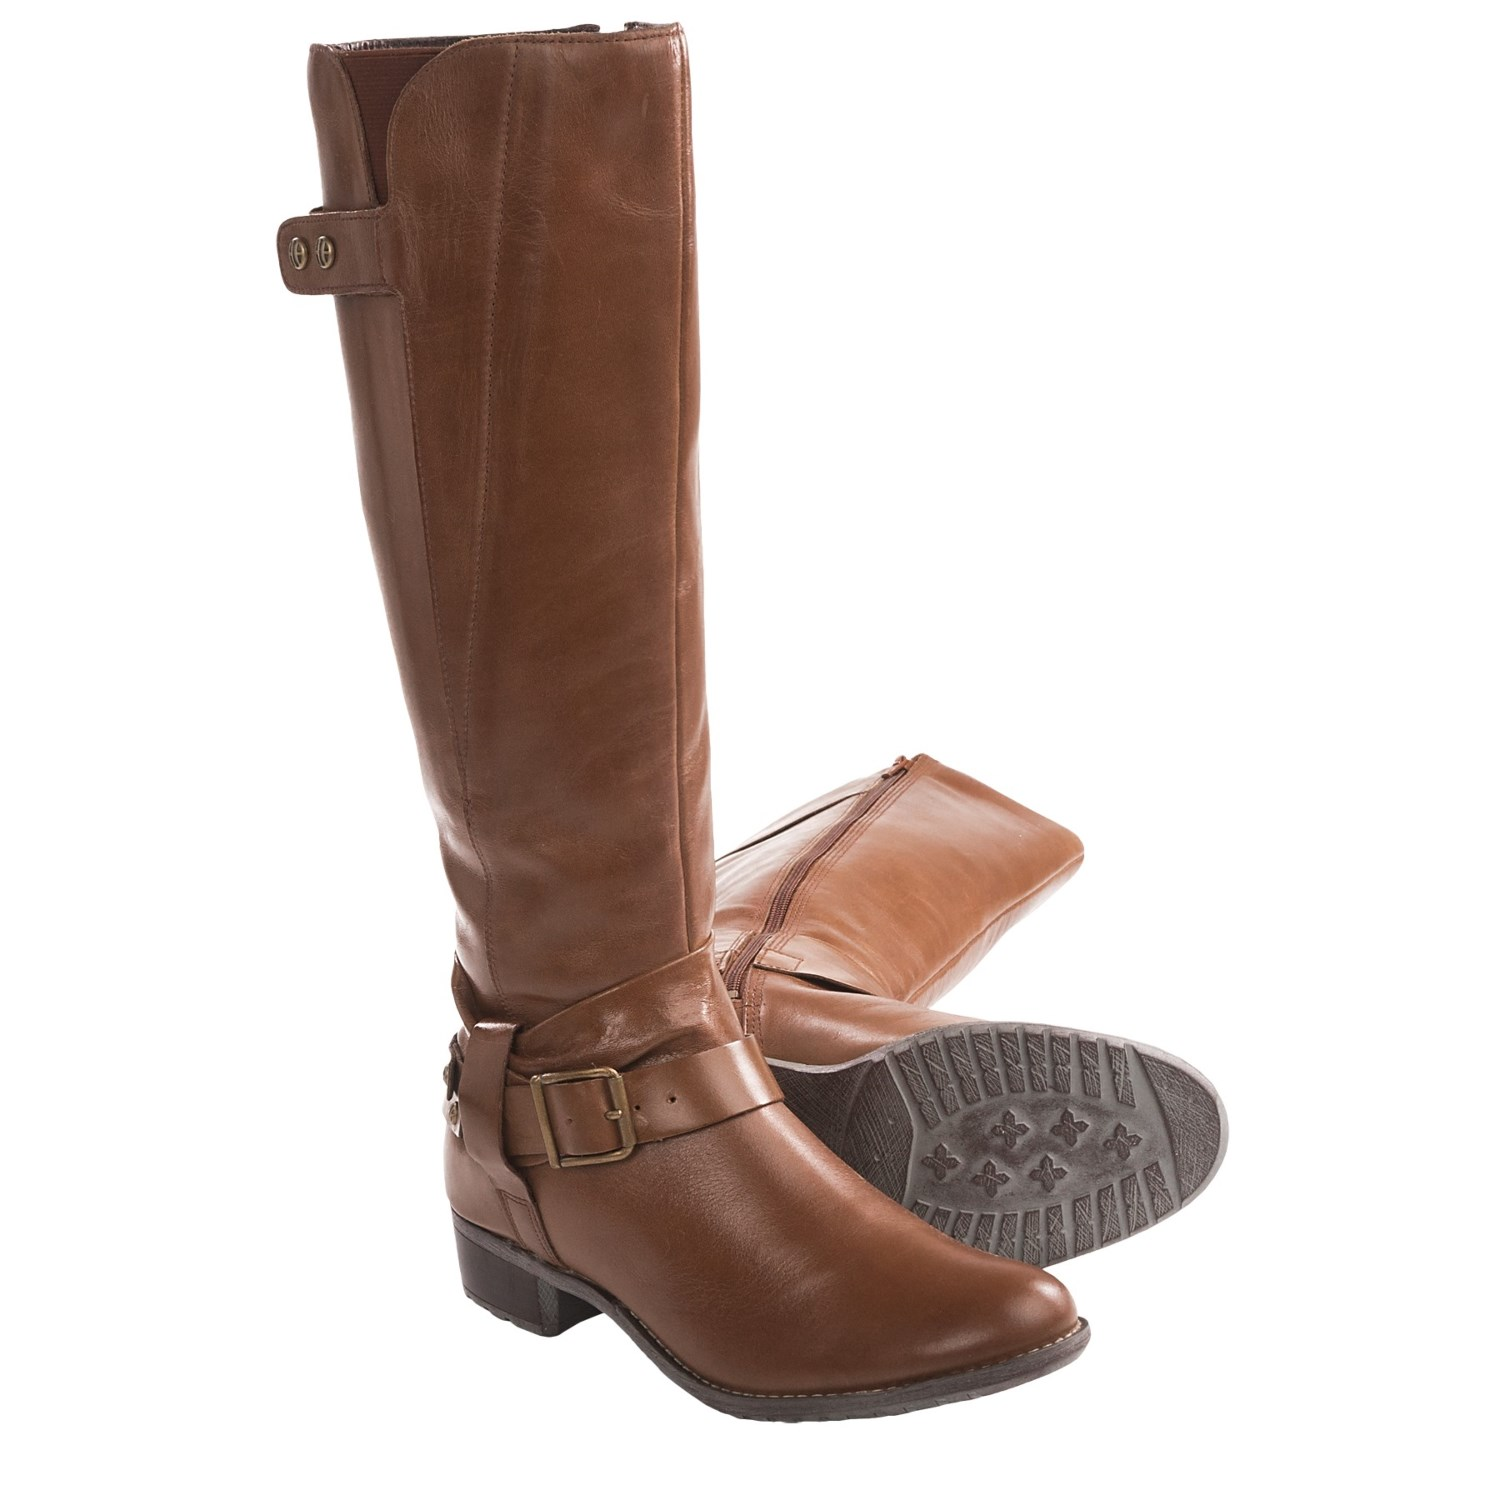 New Closeouts A True Classic In Smooth Suede Hush Puppies Landa Nellie Chelsea Boots Have A Protective Coating That Blocks Water Damage And Prevents Scuffs For Longlasting Good Looks A Cushioned Footbed, Elastic Side Gores And Soft